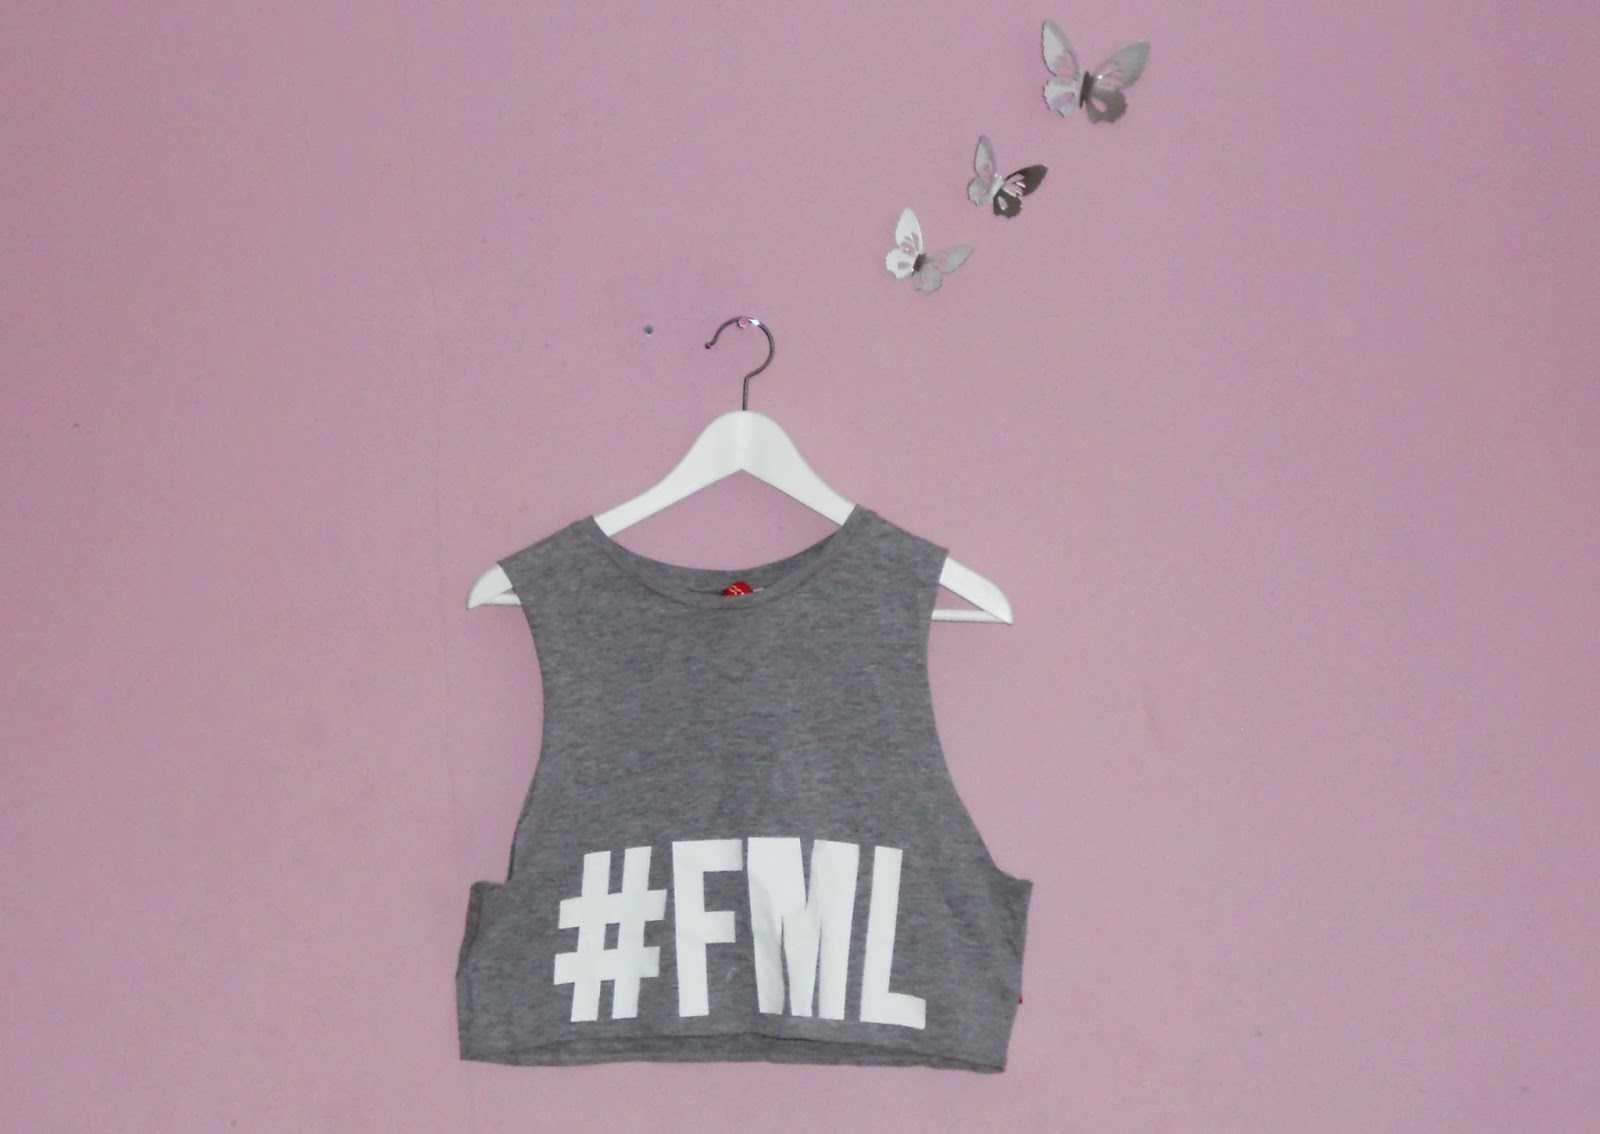 H&M FML slogan grey muscle top